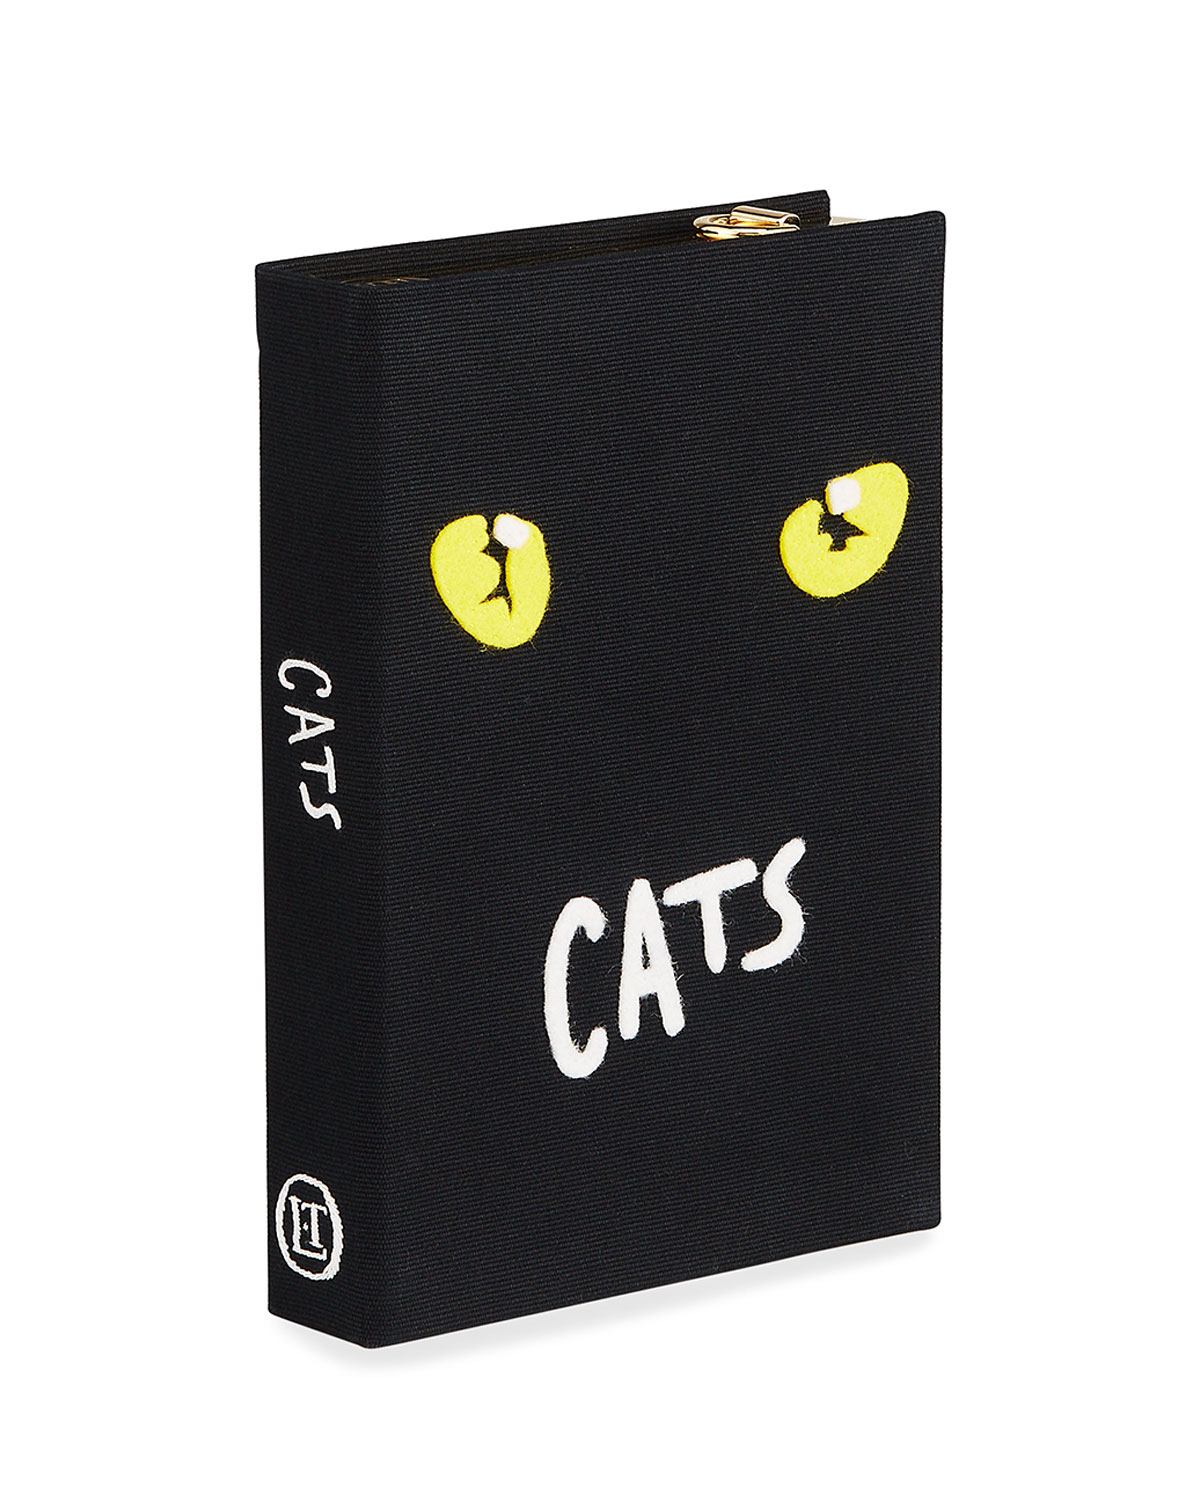 Olympia Le-Tan Cats Book Clutch Bag